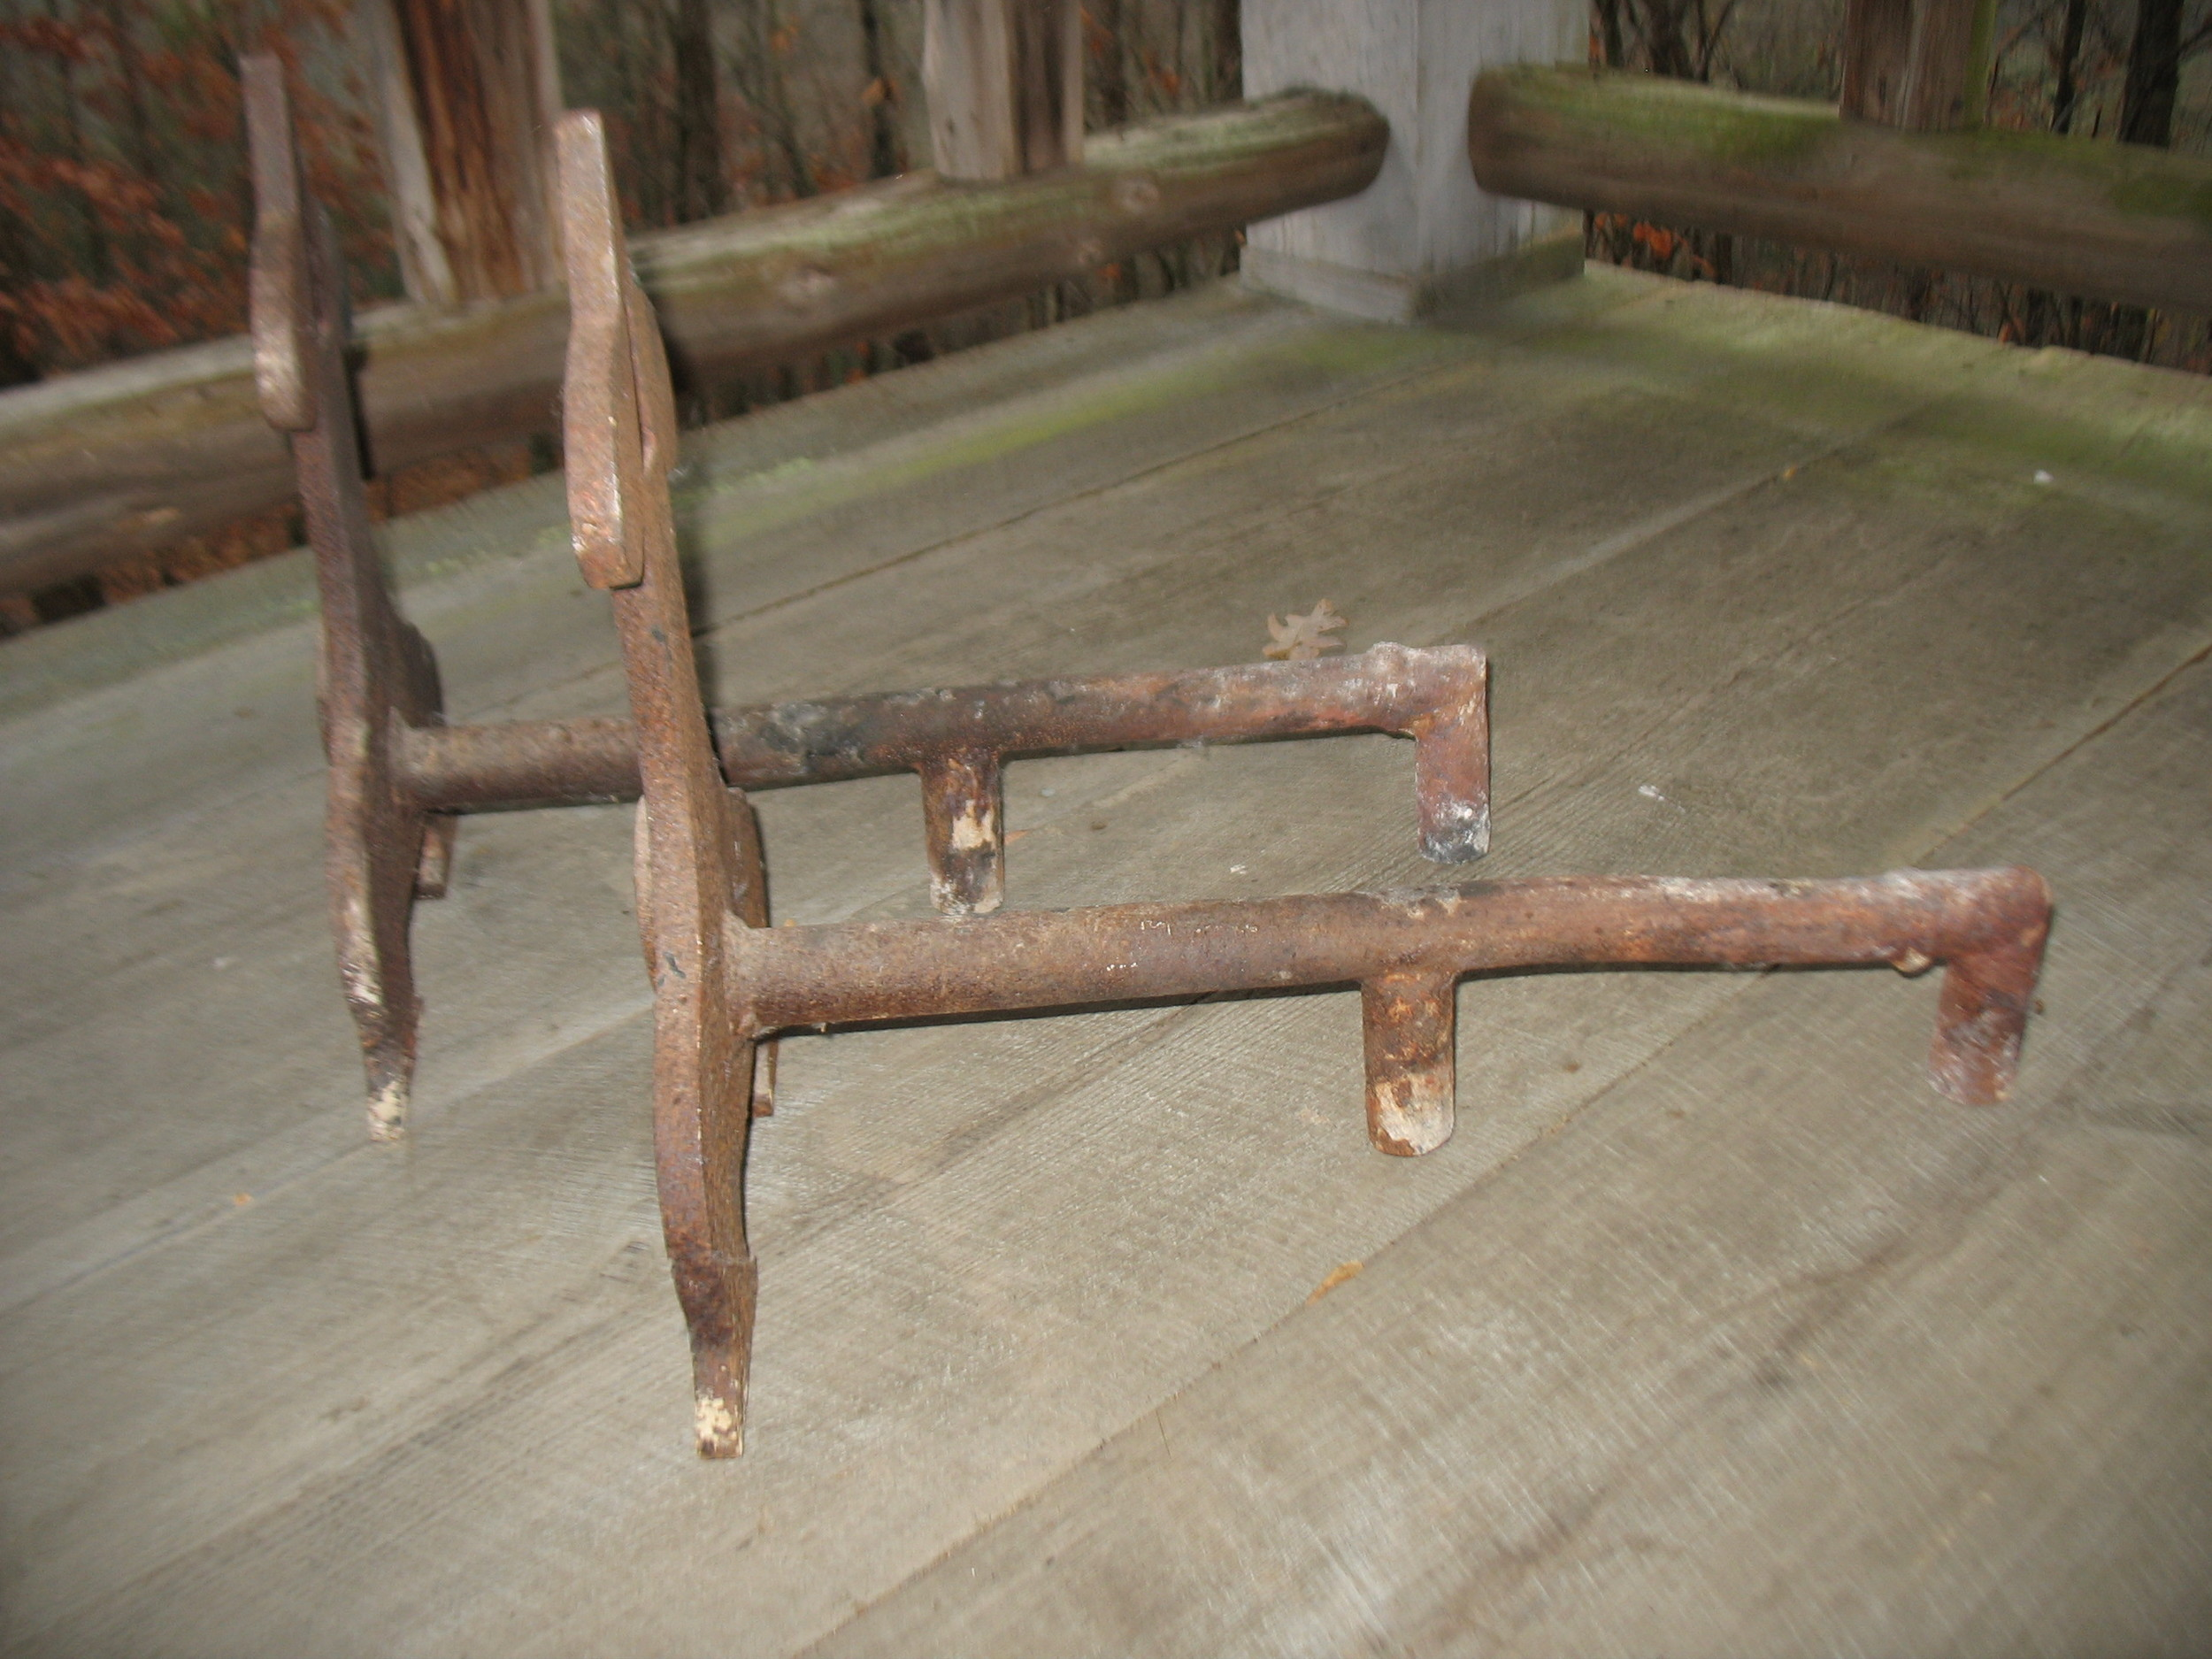 This will show a side view ot theFrench Andirons.